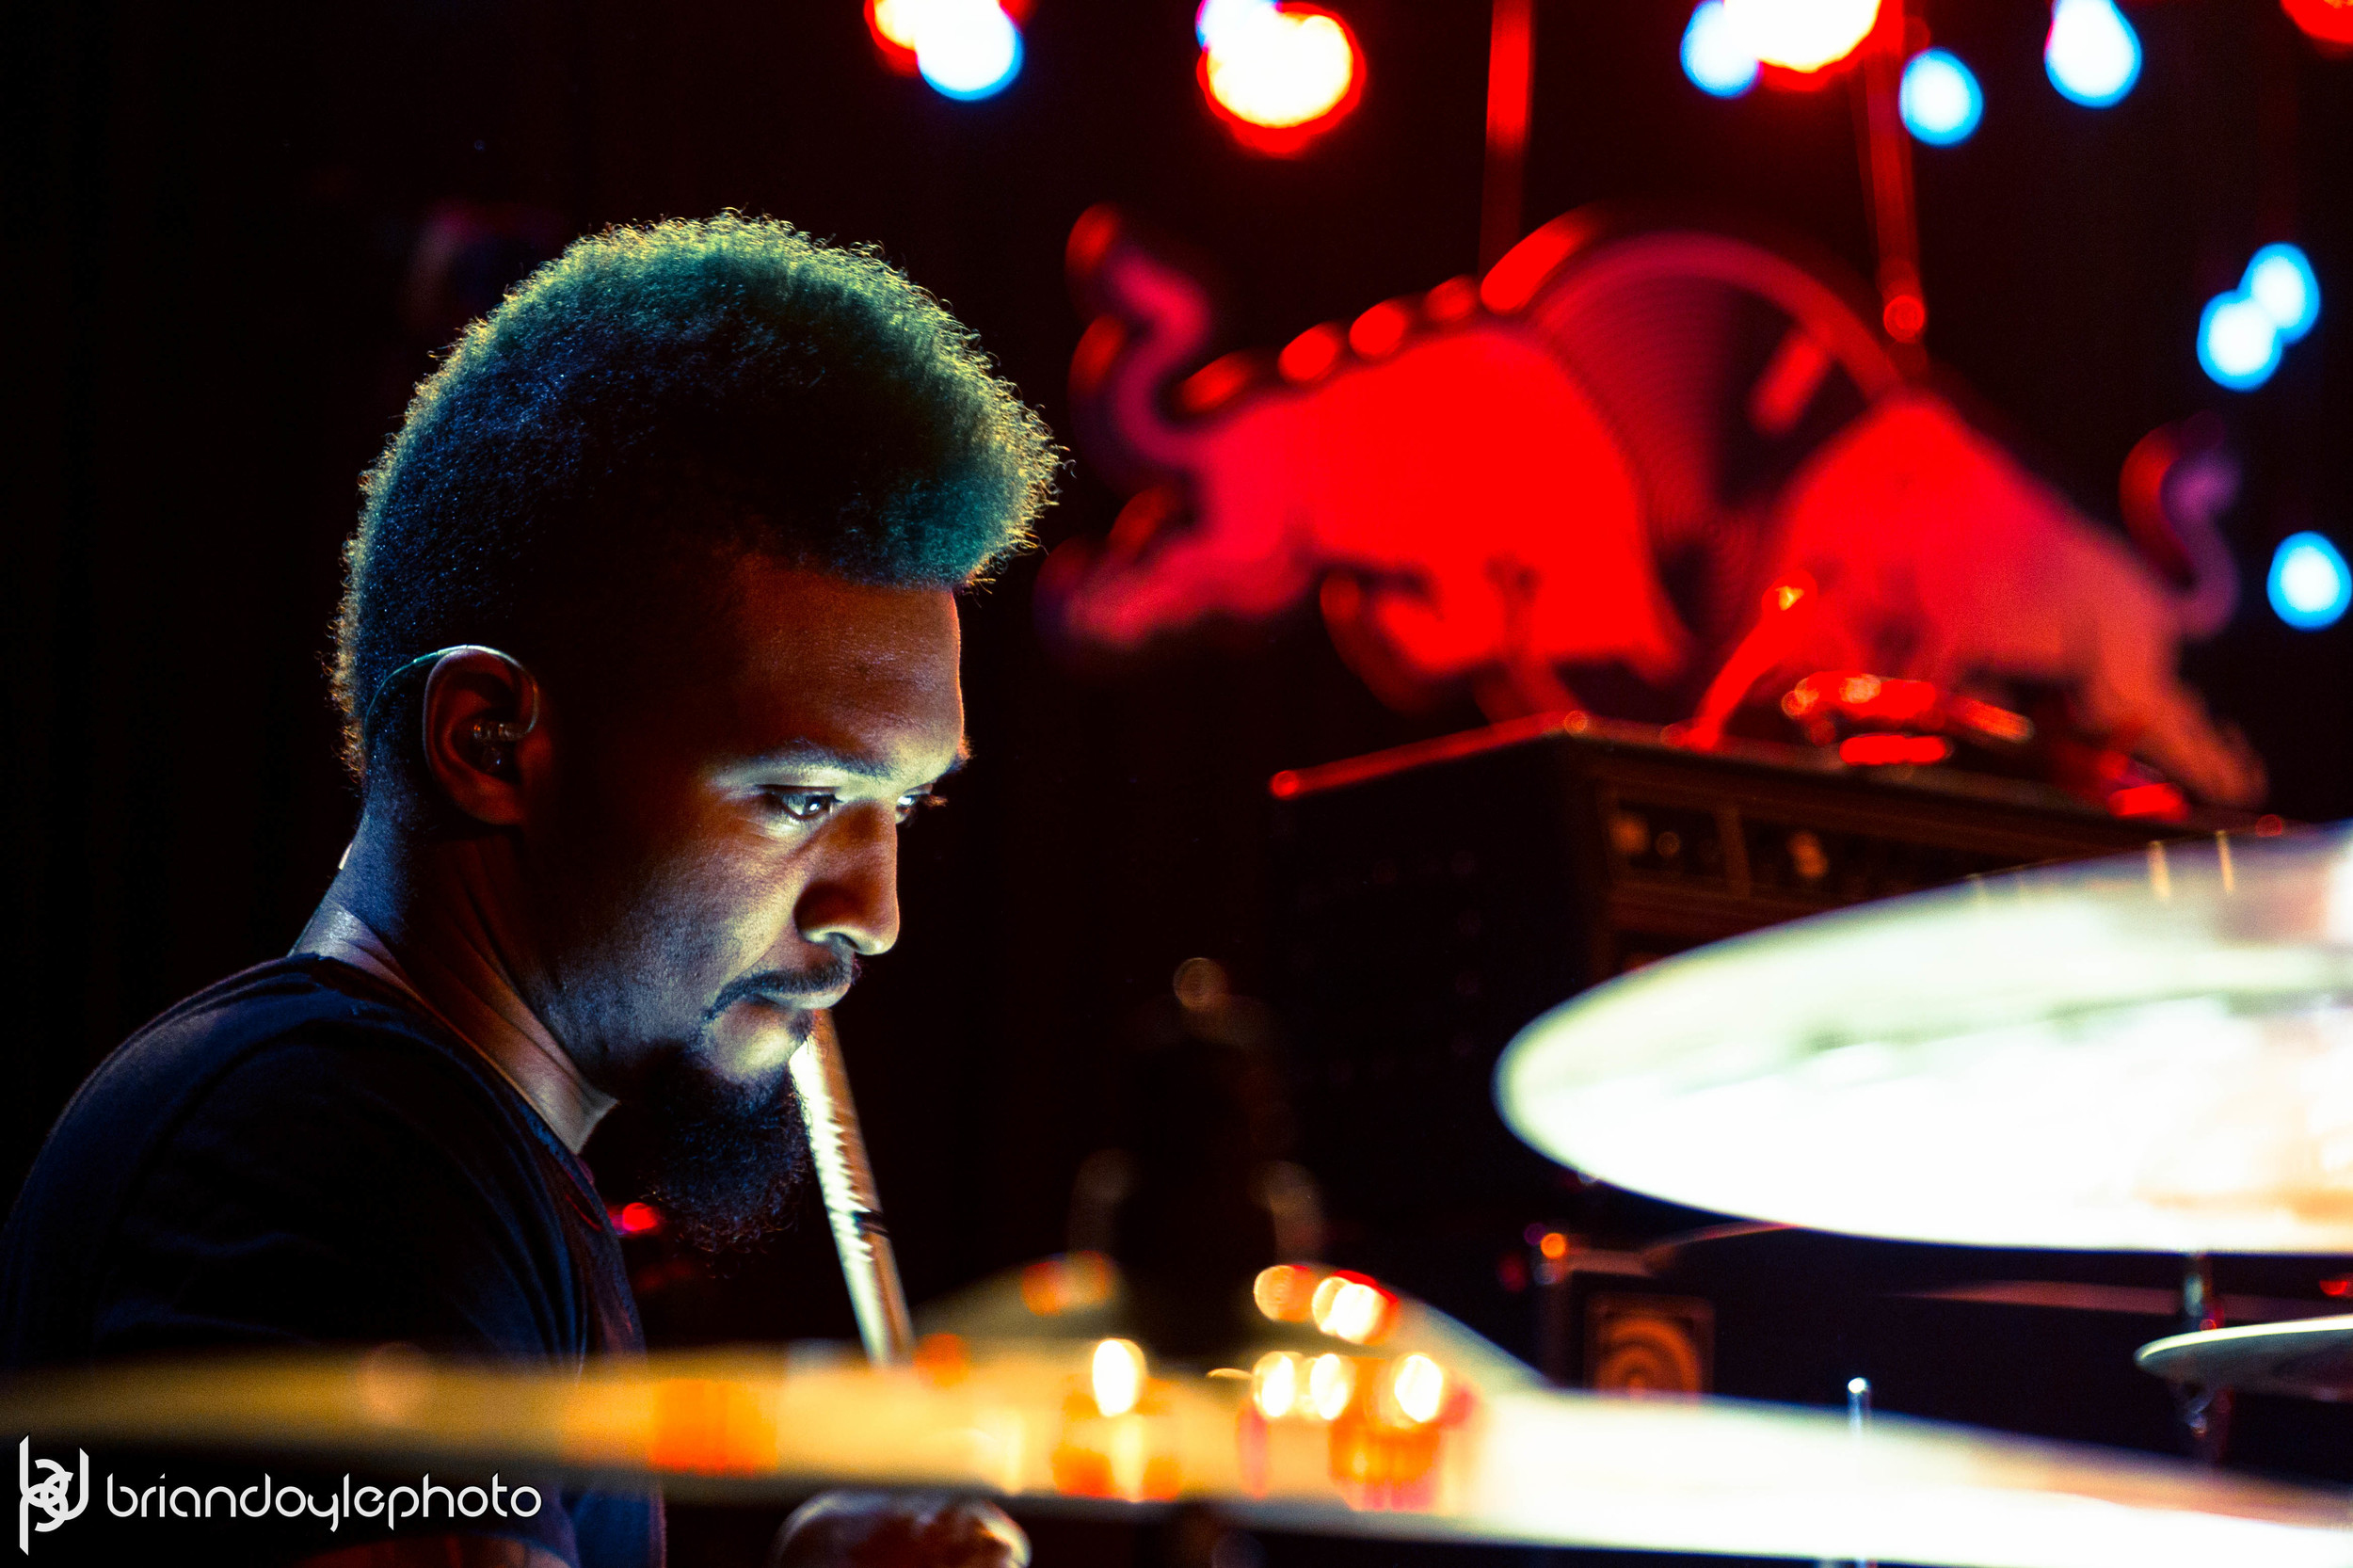 Red Bull - MS MR, Feathers, Electric Sons @ The Roxy 2014.11.02 -24.jpg